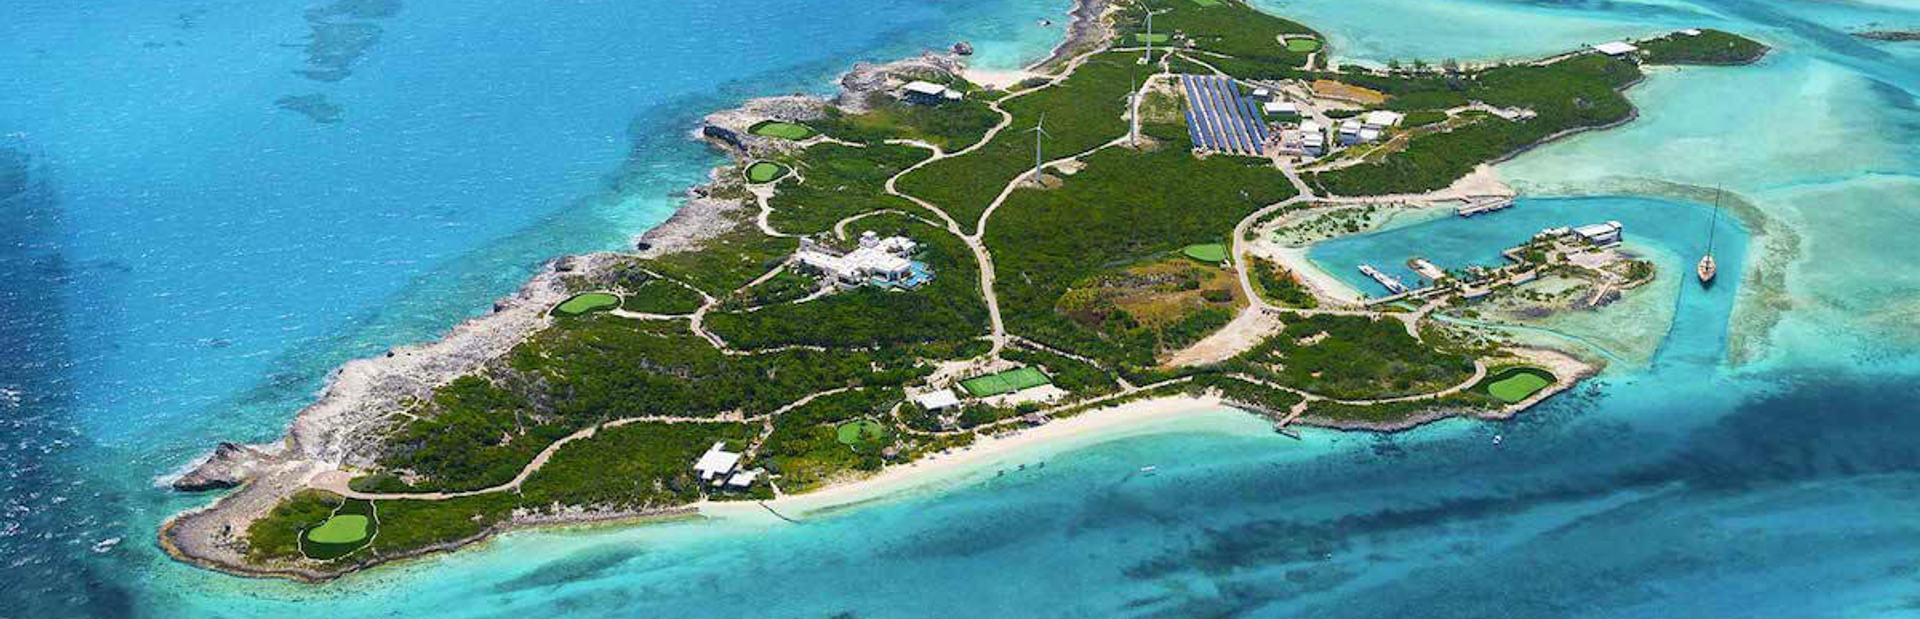 Over Yonder Cay Image 1